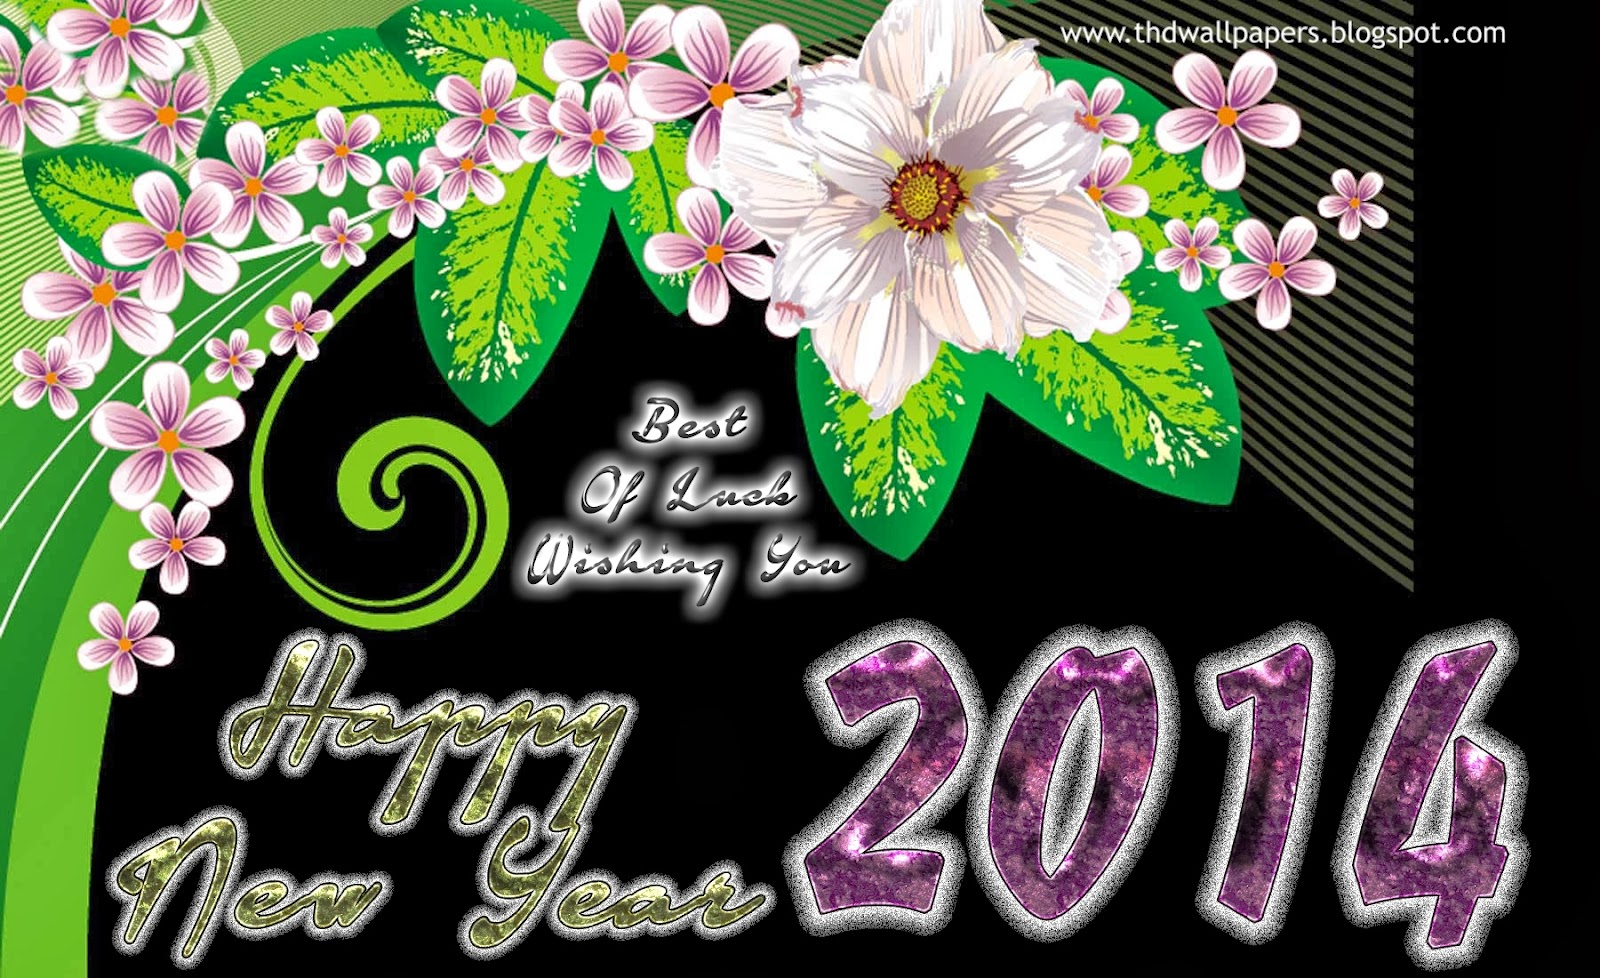 2014 Happy New Year Wishes.10 Free Happy New Year Screensaver 2014